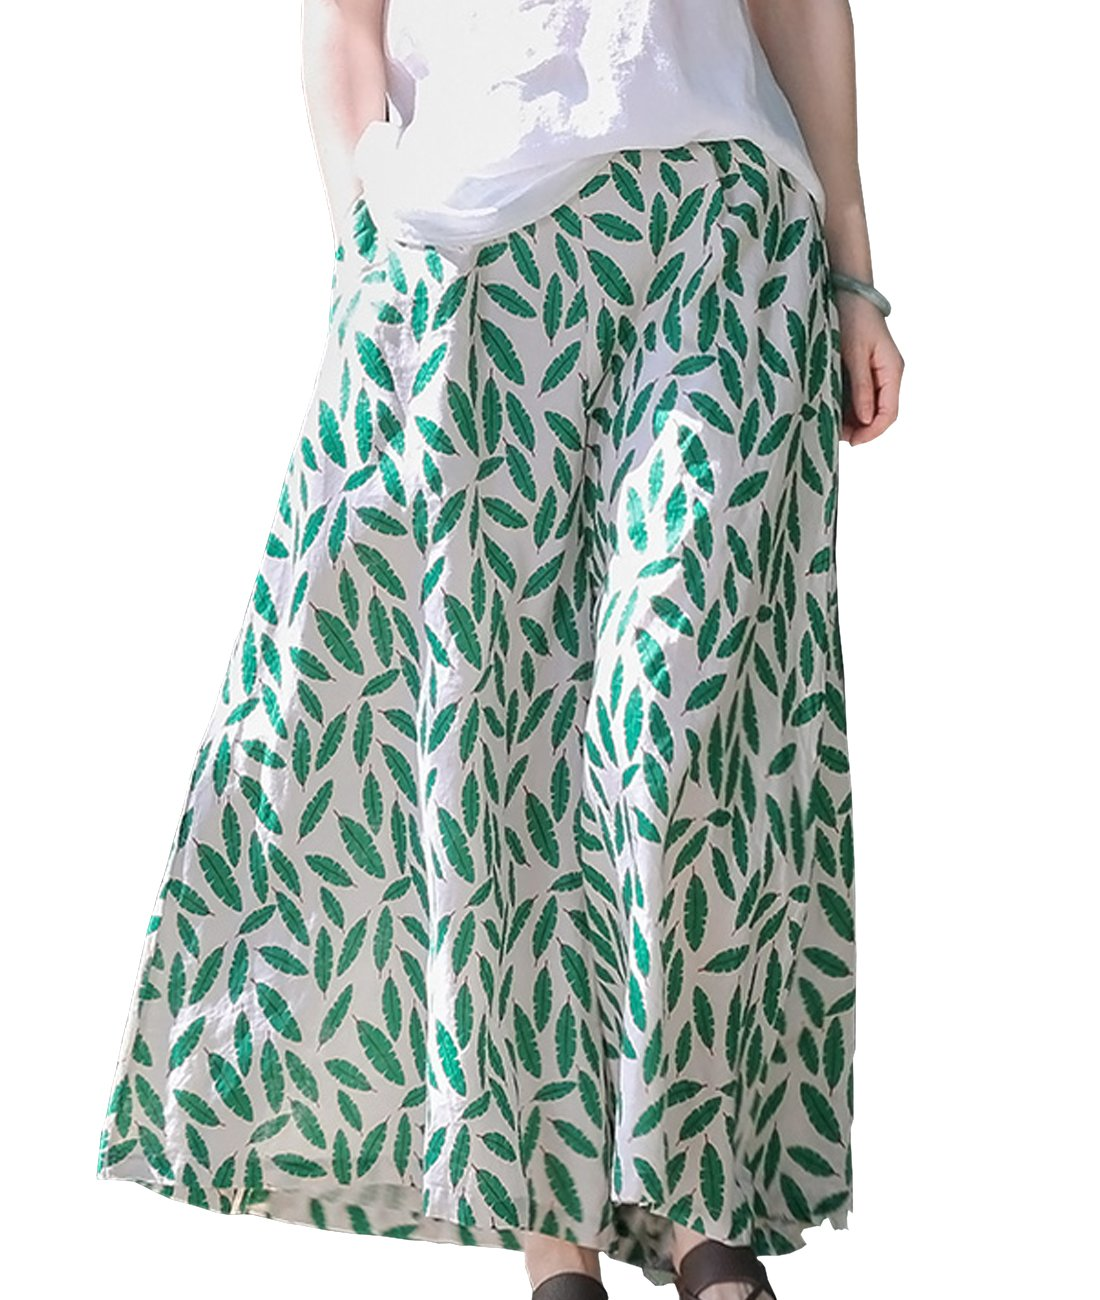 YESNO PZ2 Women Casual Loose Floral Cropped Pants Skirts 100% Linen Wide Leg Low Crotch Pocket